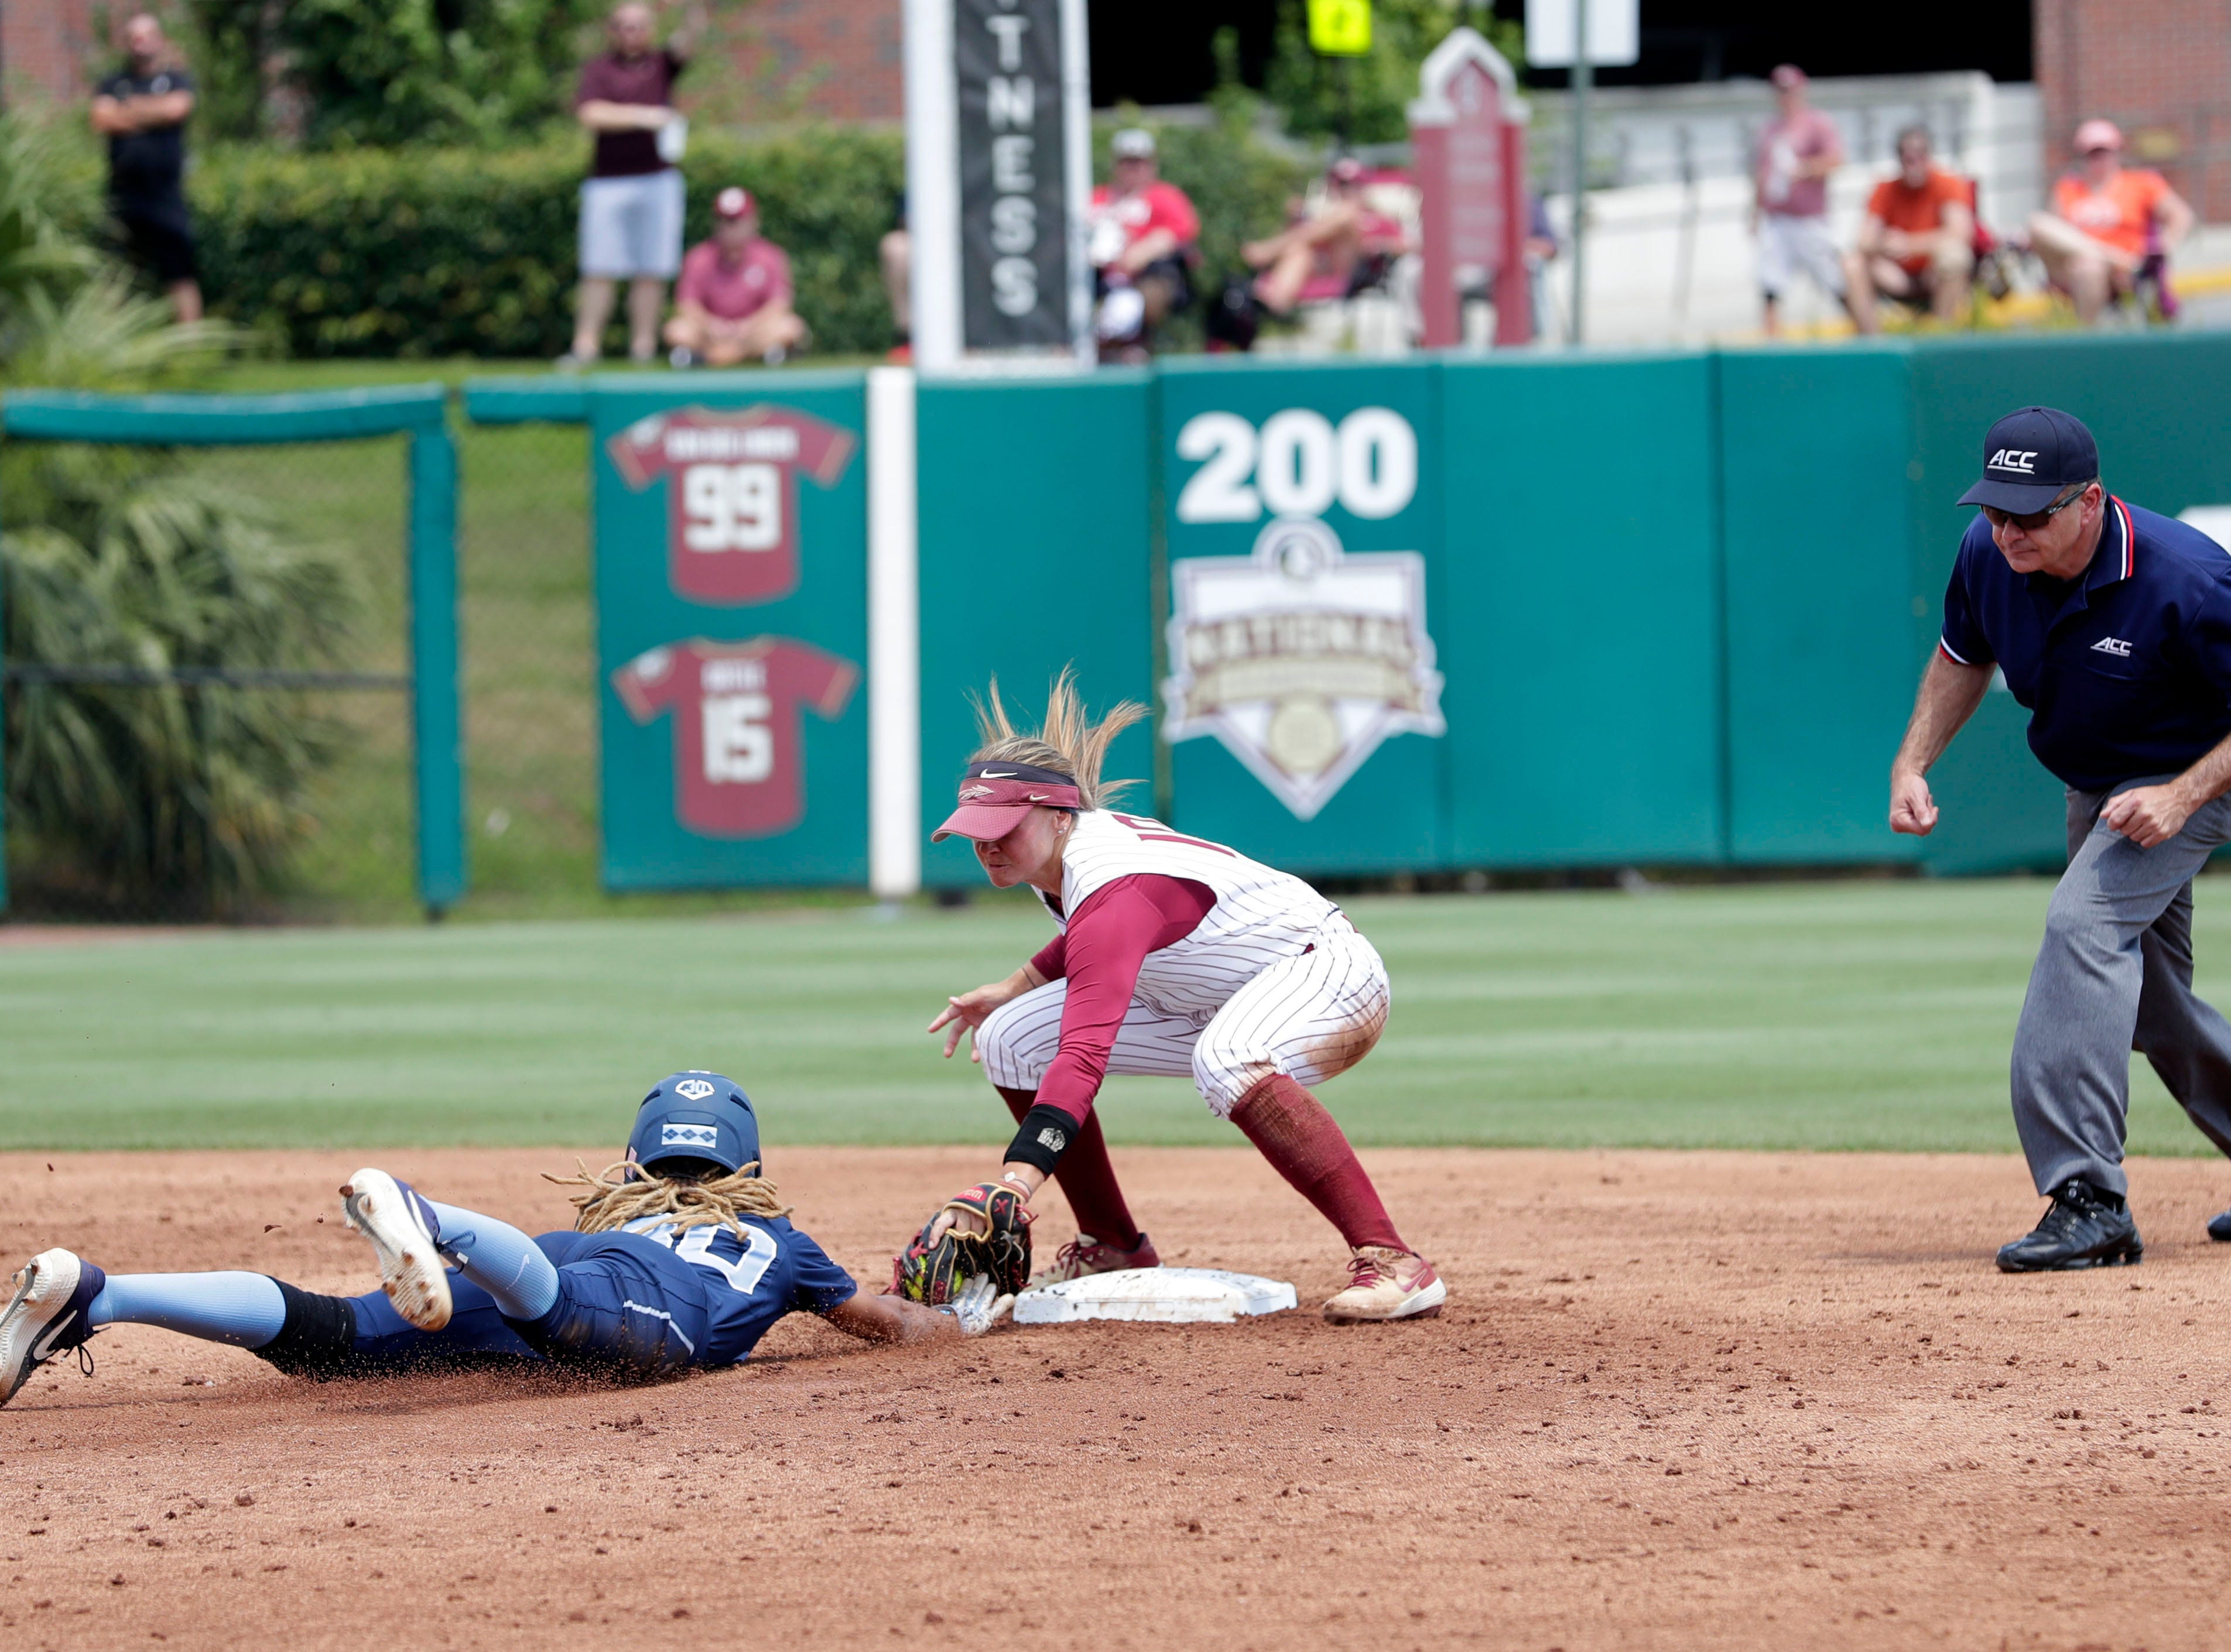 Florida State Seminoles infielder Cali Harrod (10) tags the runner to get the out at second base. The Florida State Seminoles host the UNC Tar Heels for the ACC Softball Tournament finals Saturday, May 11, 2019.